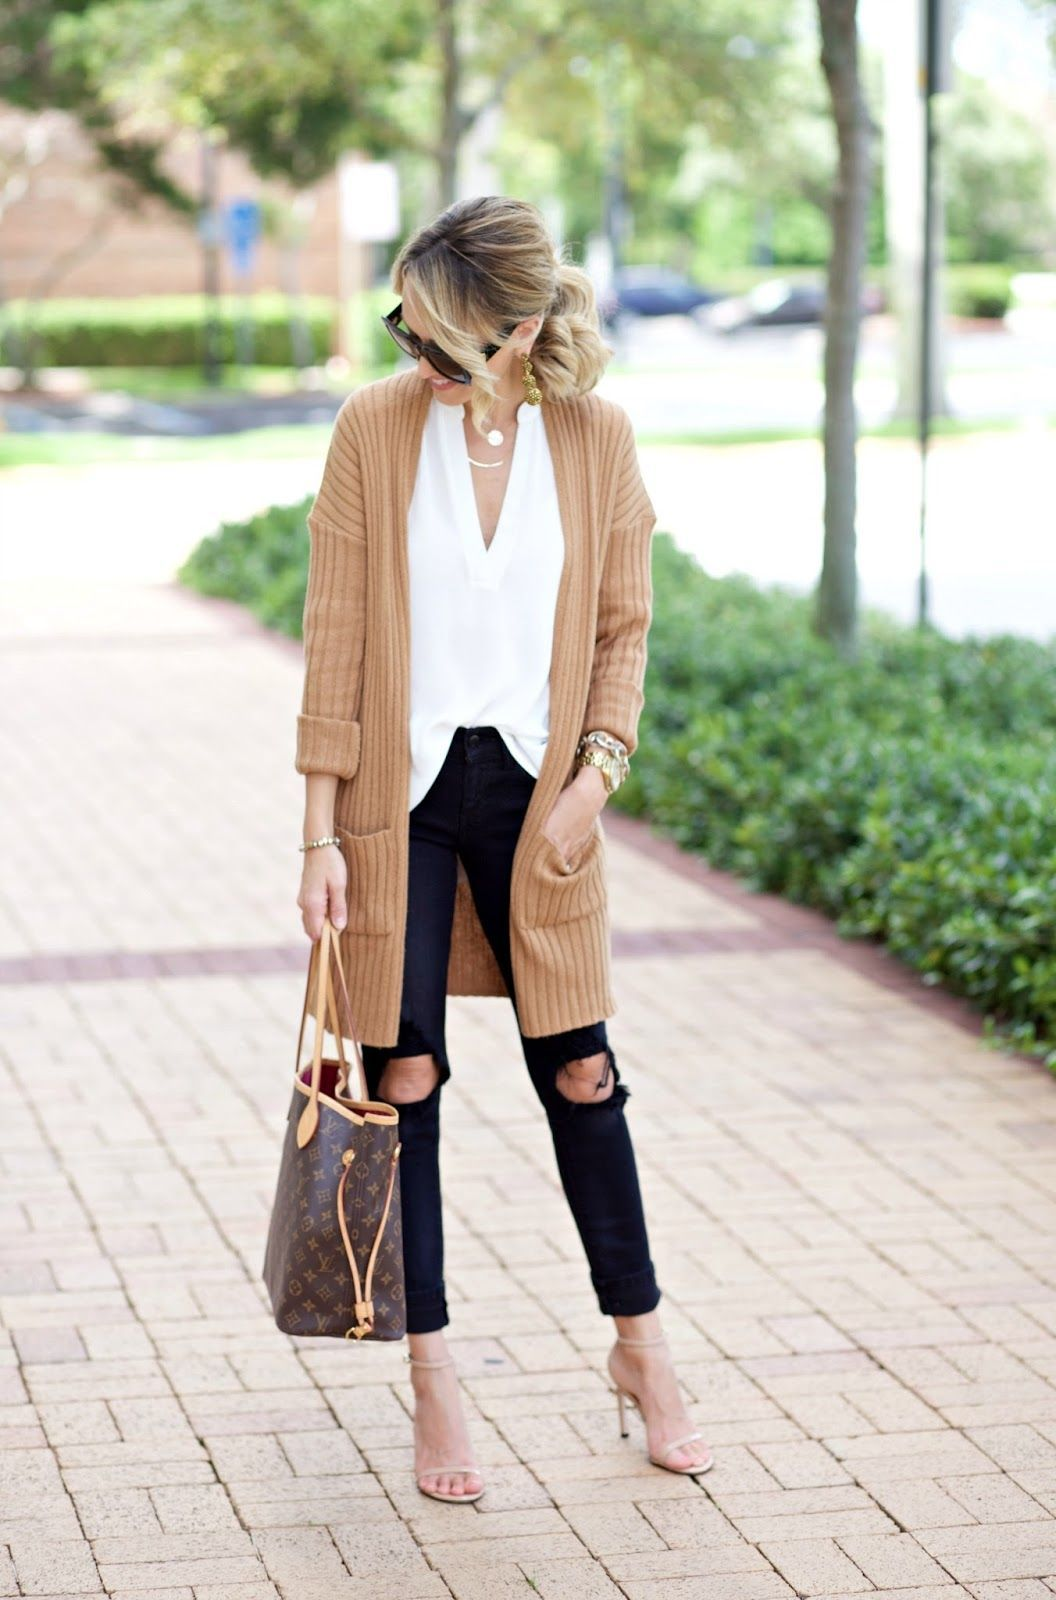 Fall Outfit Ideas For Ladies